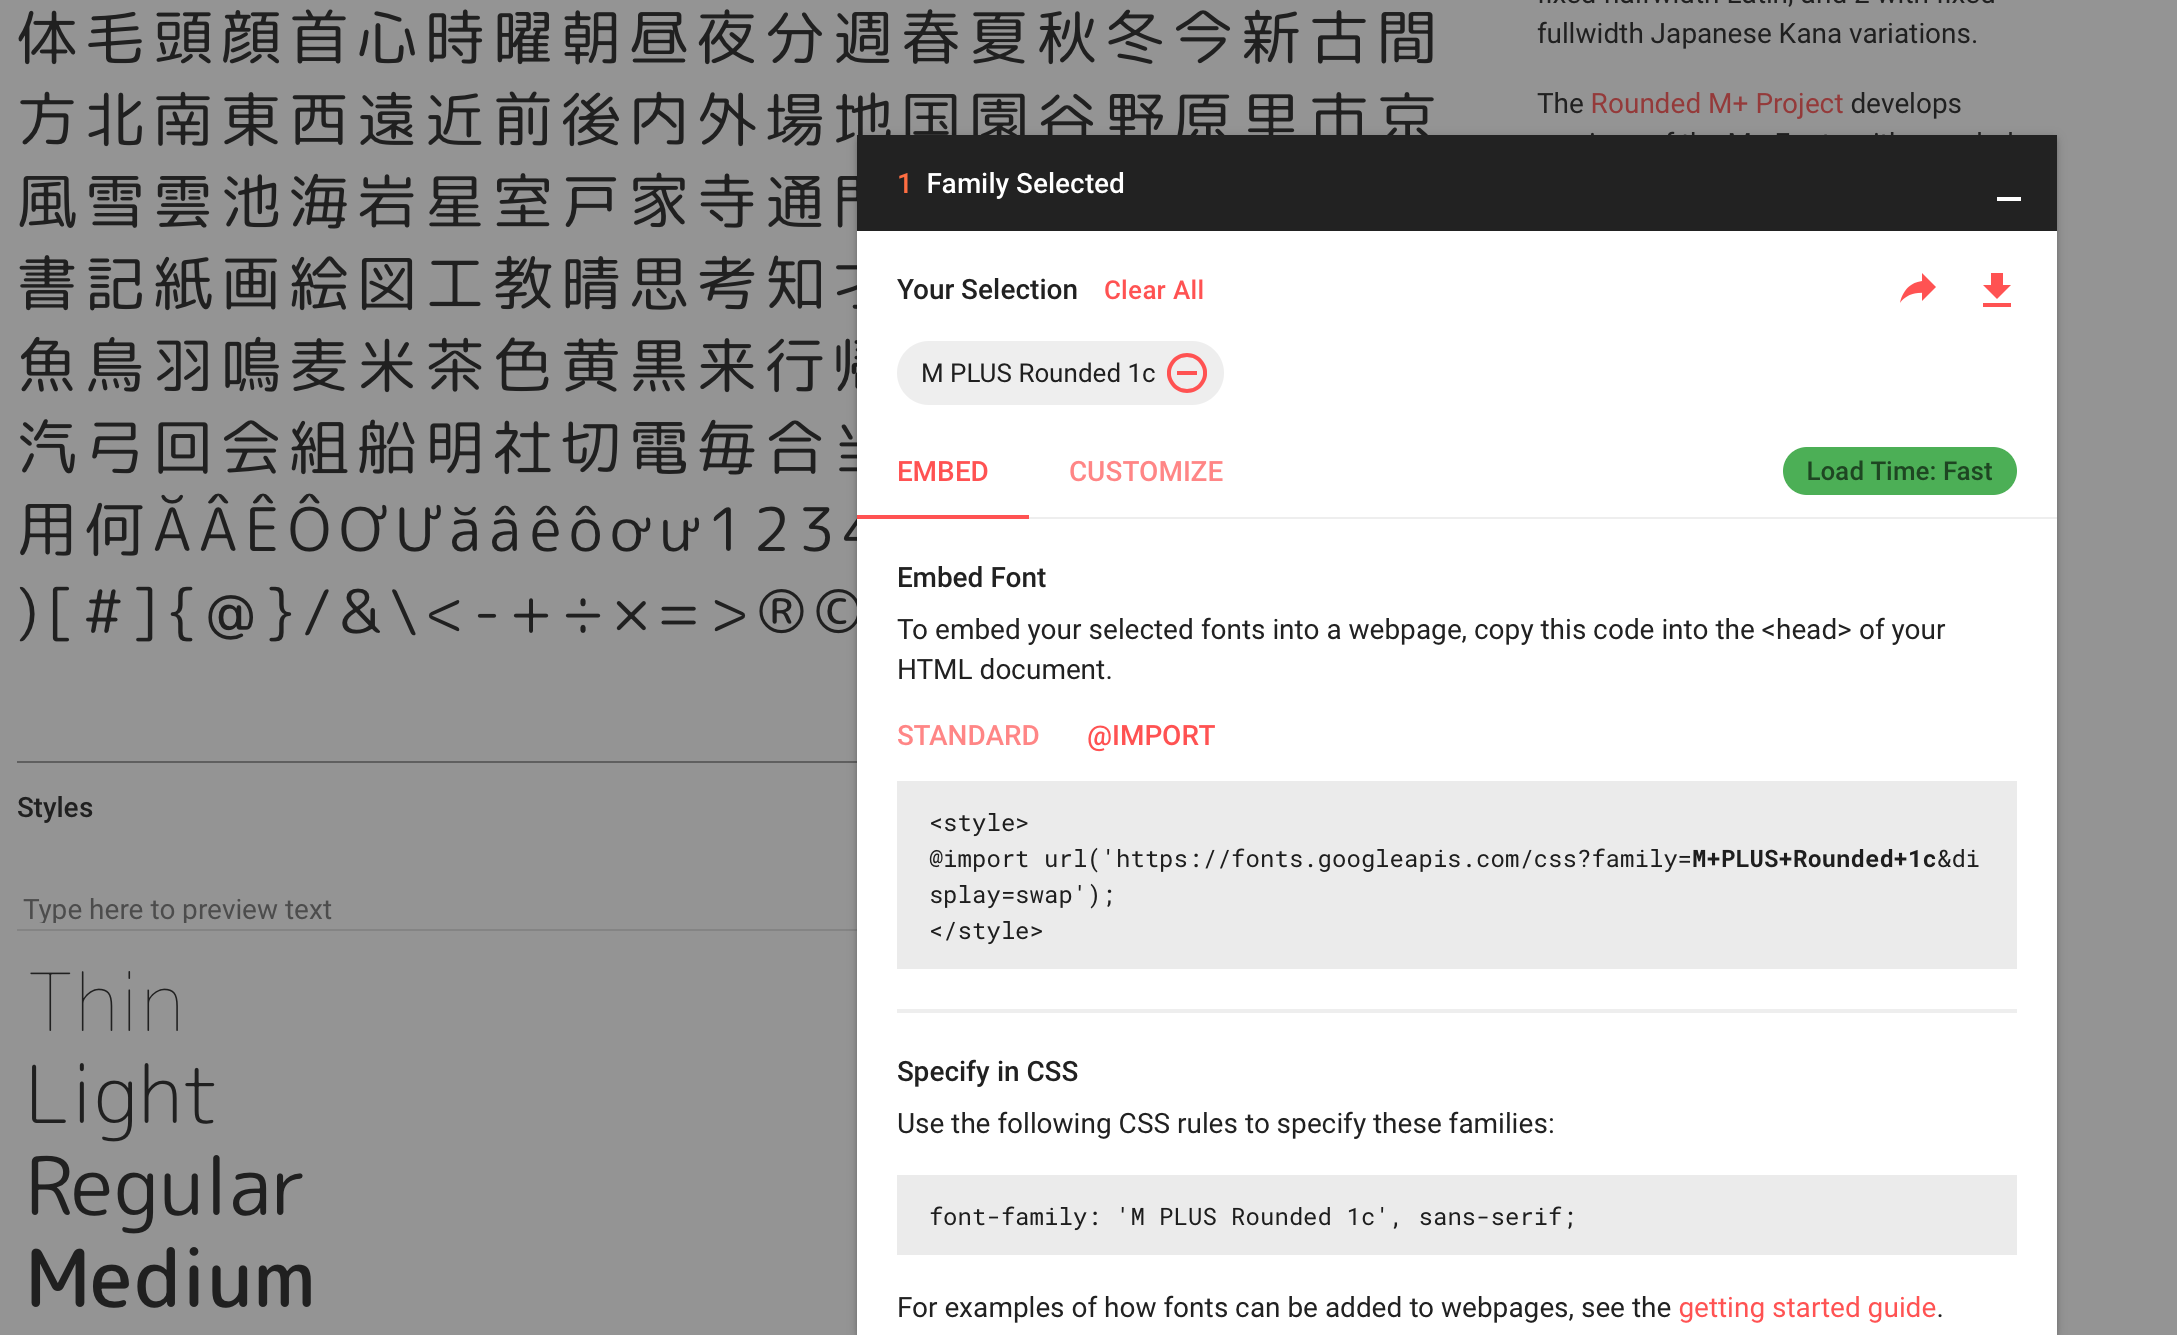 Google Fonts 日本語Webフォント M PLUS Rounded 1c選択画面 2